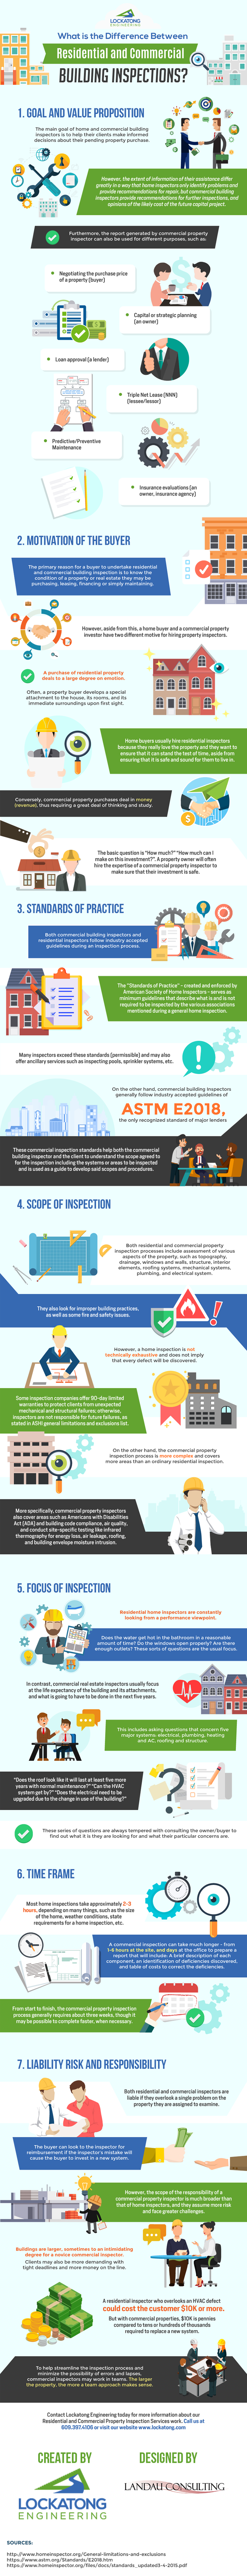 What is the Difference Between Residential and Commercial Building Inspections?